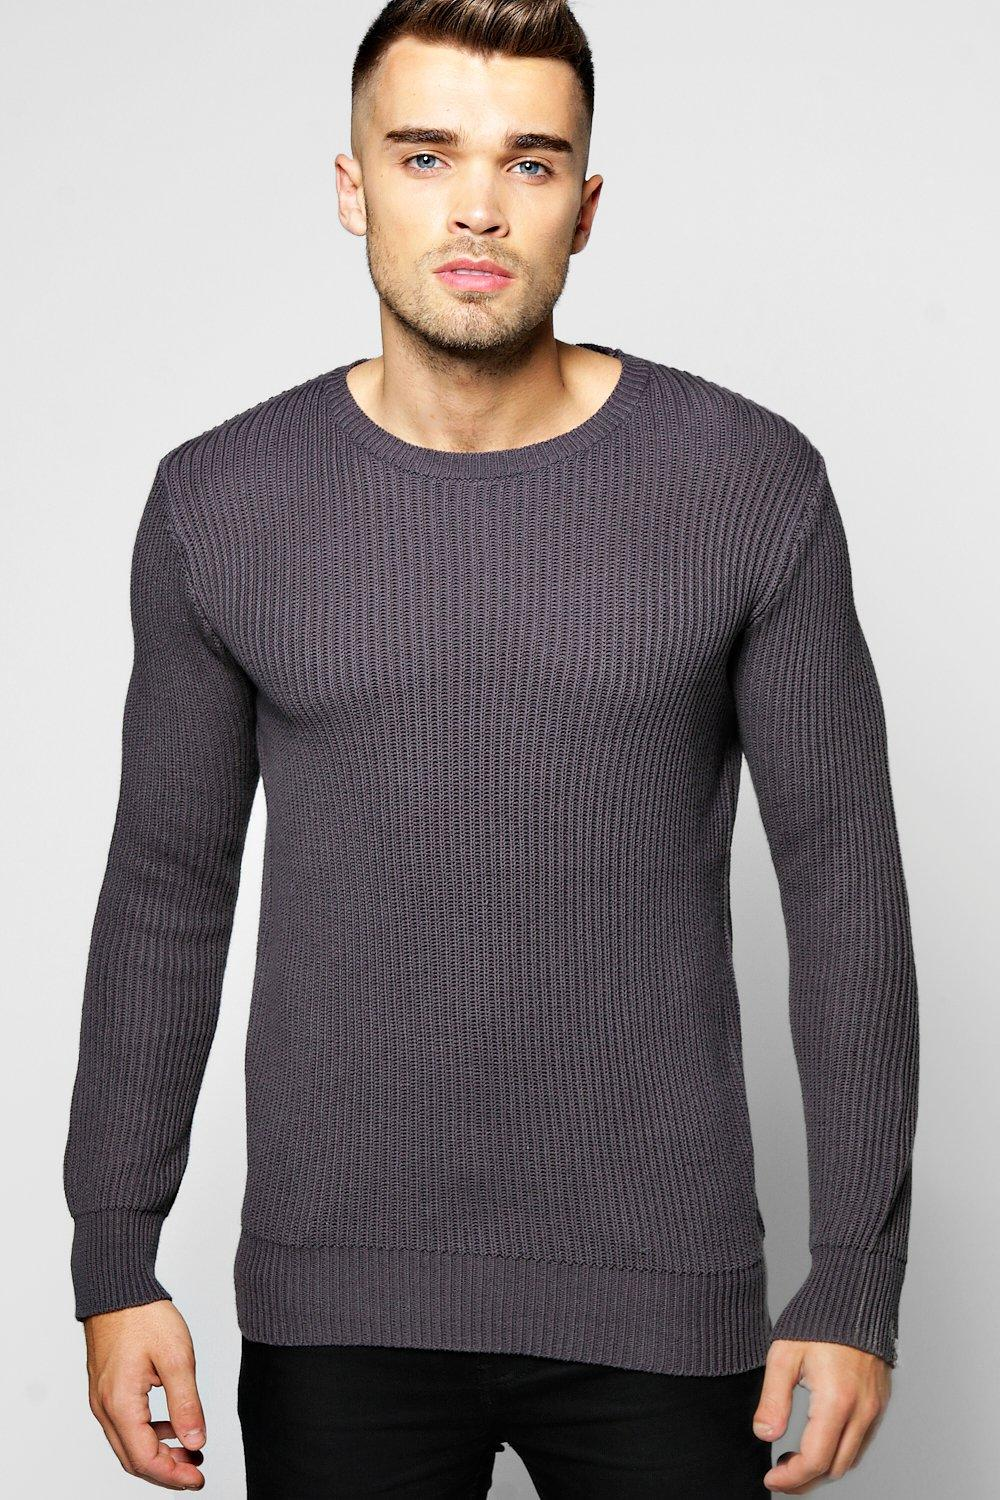 Fisherman Rib Crew Neck Sweater